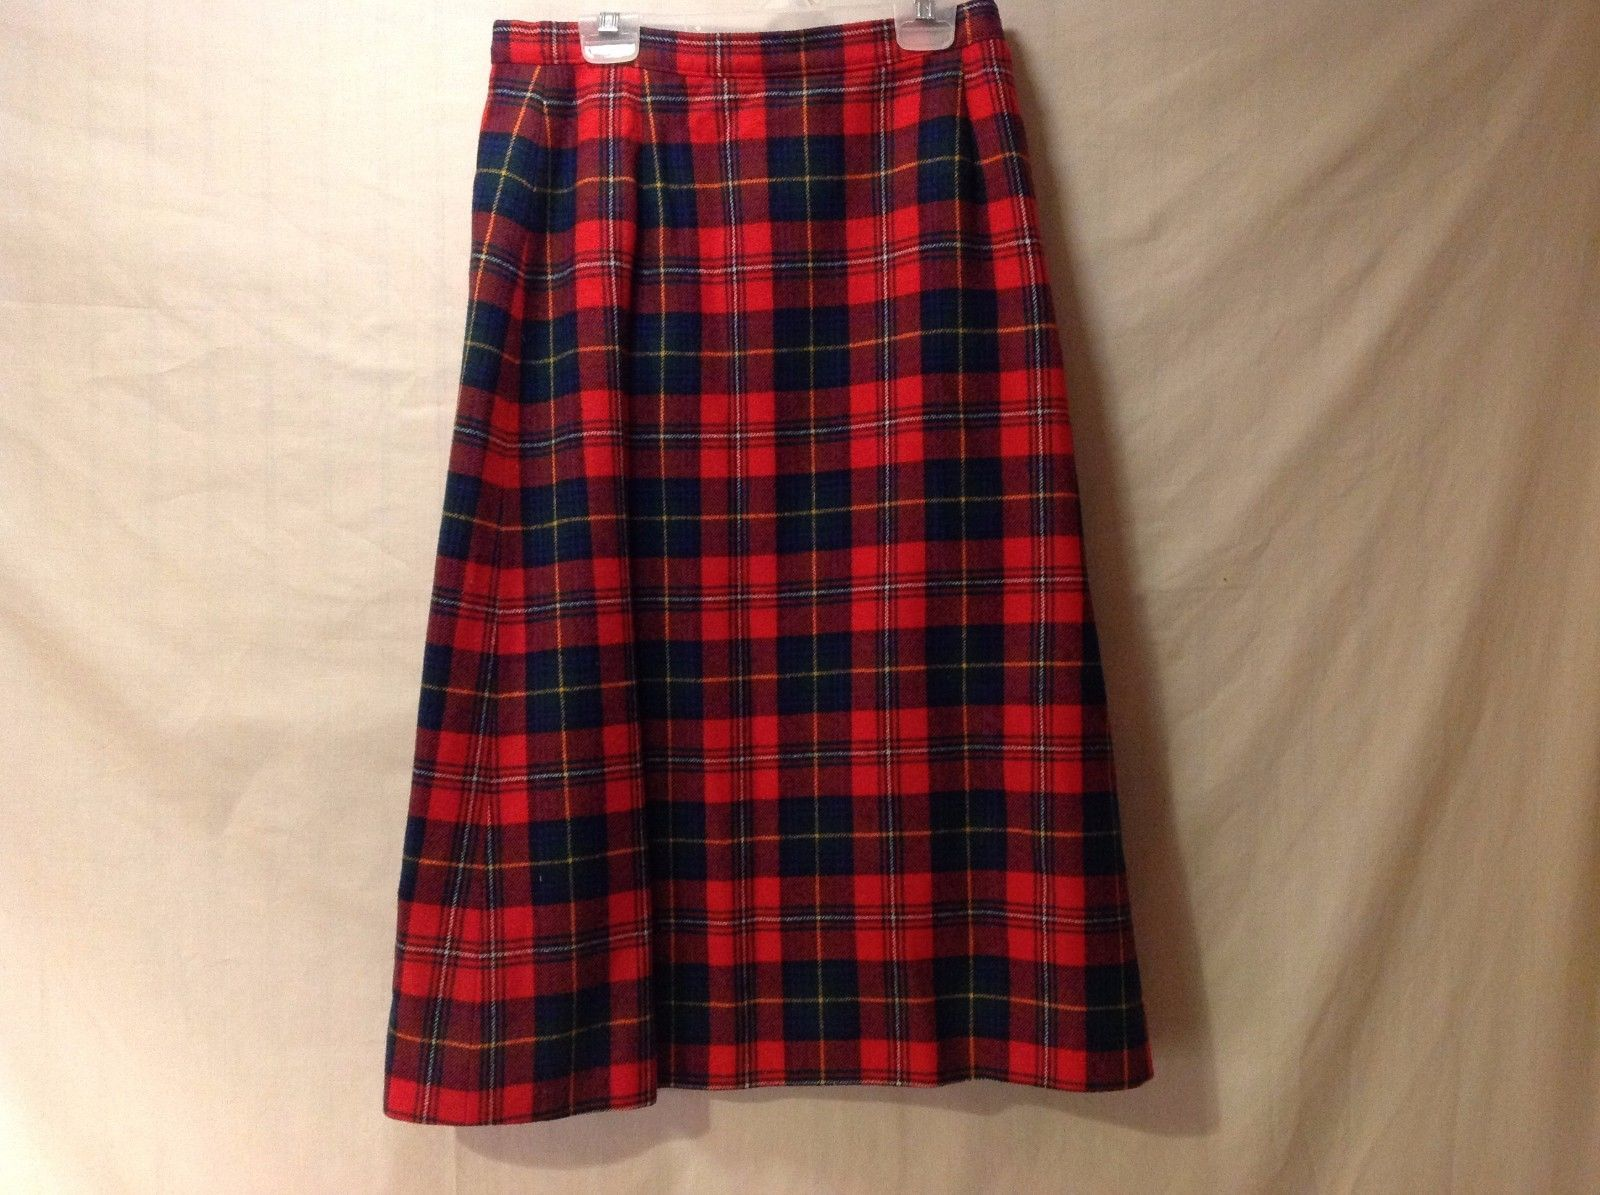 Women's Pendleton Plaid Skirt Red Hunter Green Blue Yellow  Size 10